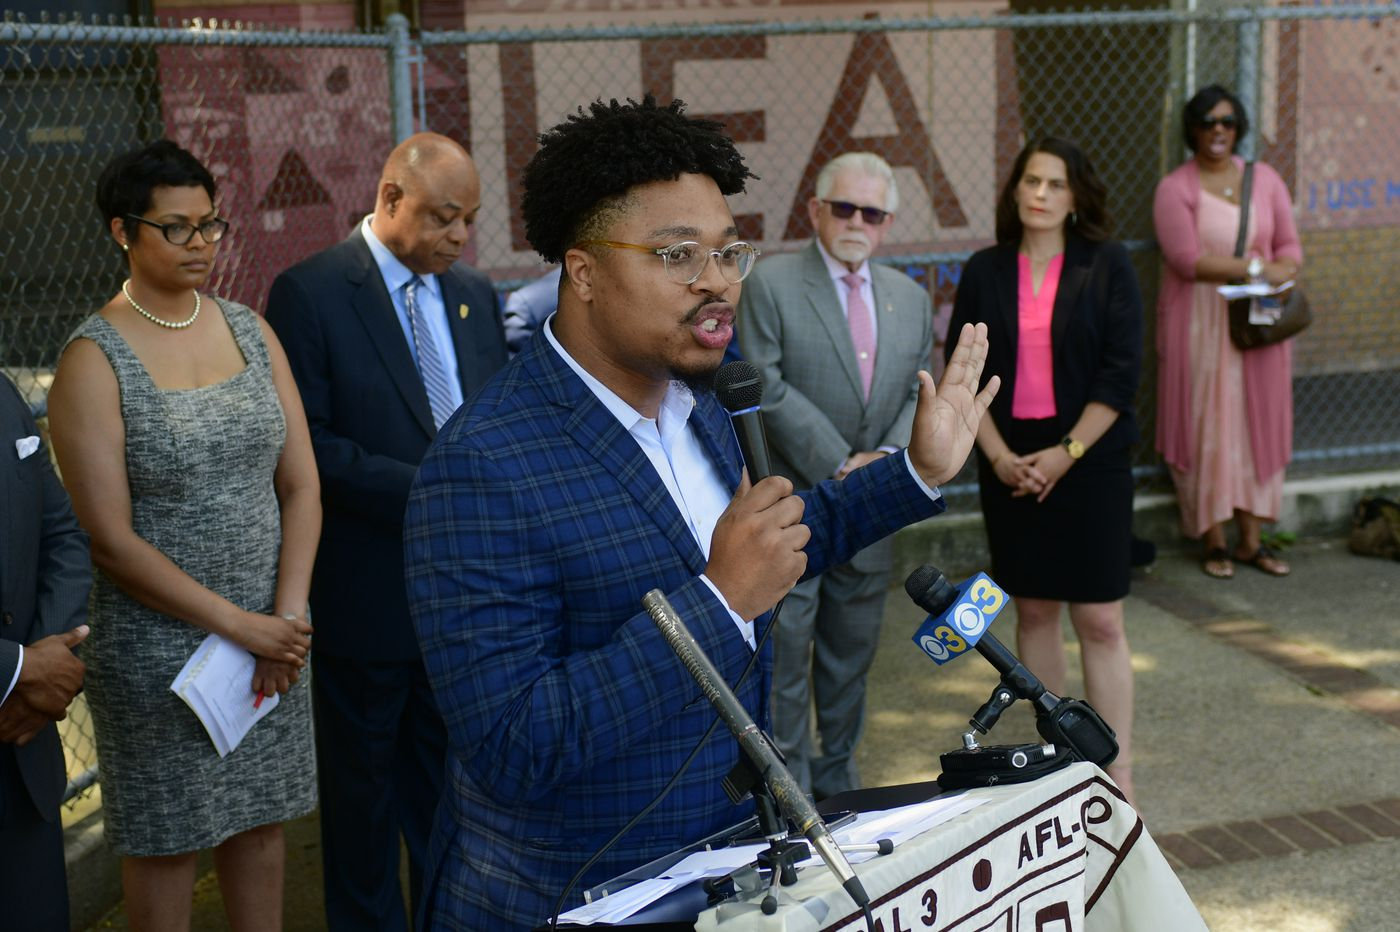 Lawmakers to propose bill that they say could bring $85 million to Philly schools